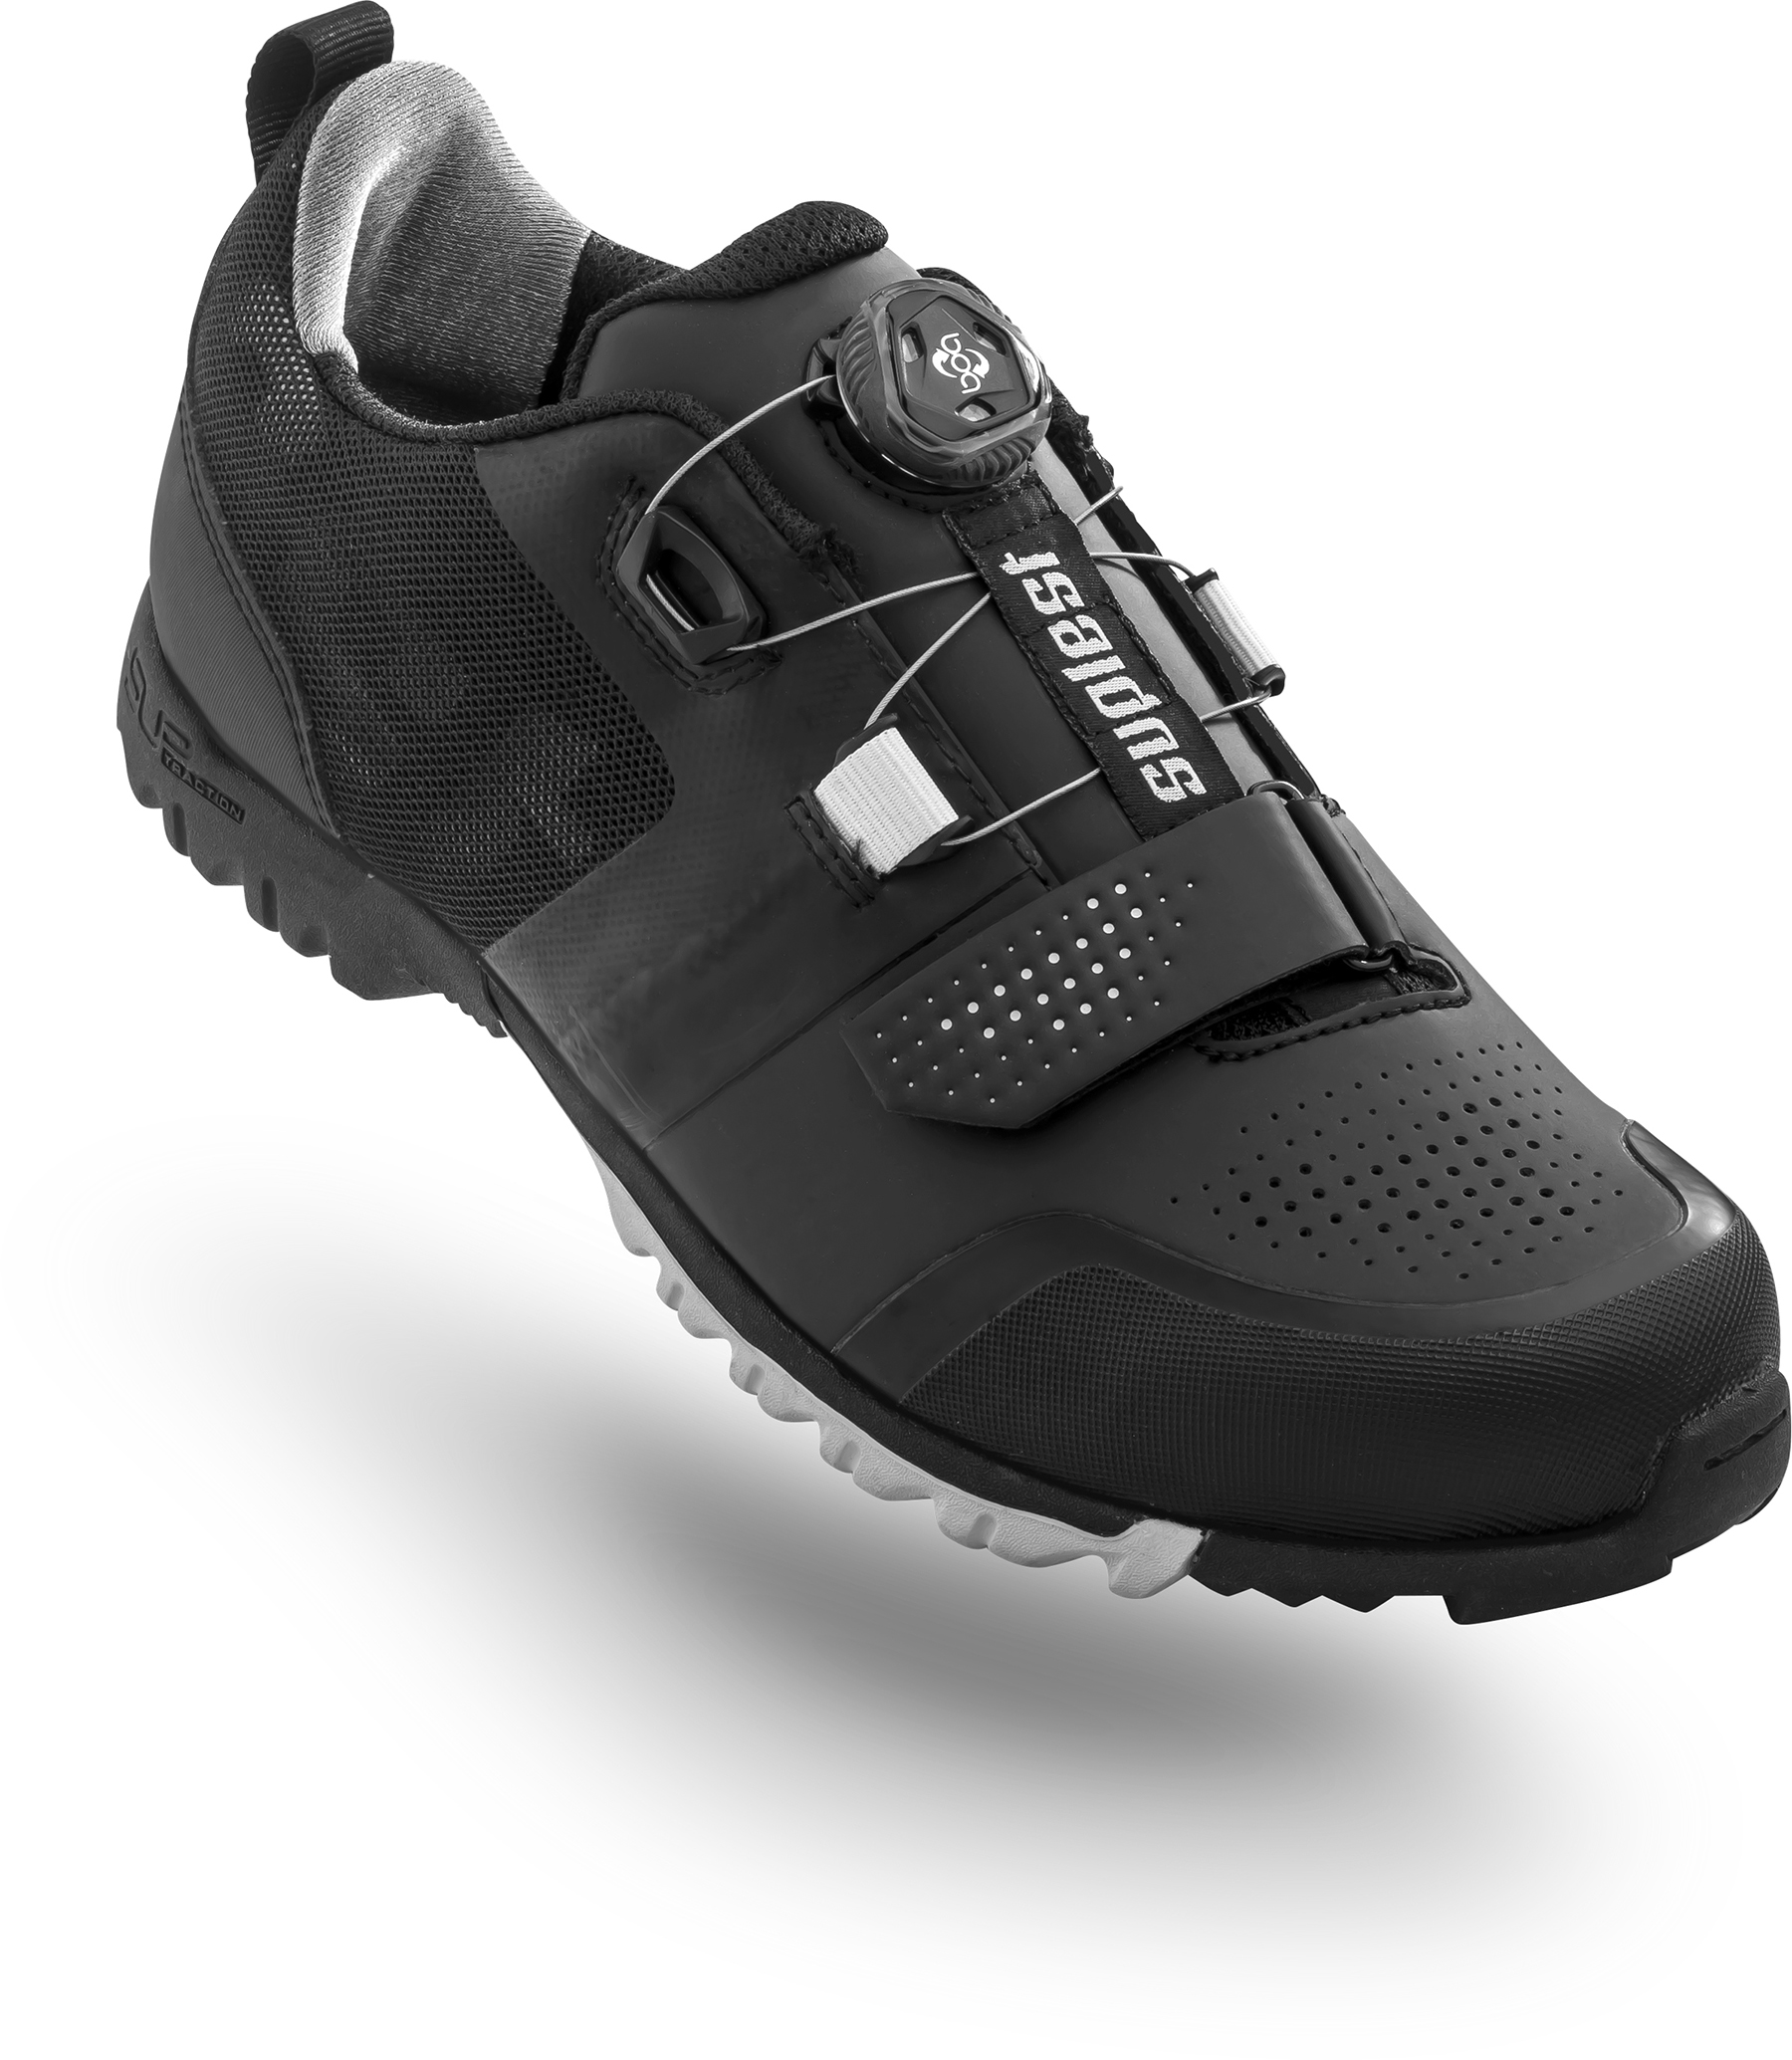 Suplest X.1 Pro BOA L6 Suptraction Off Road Shoe | Shoes and overlays